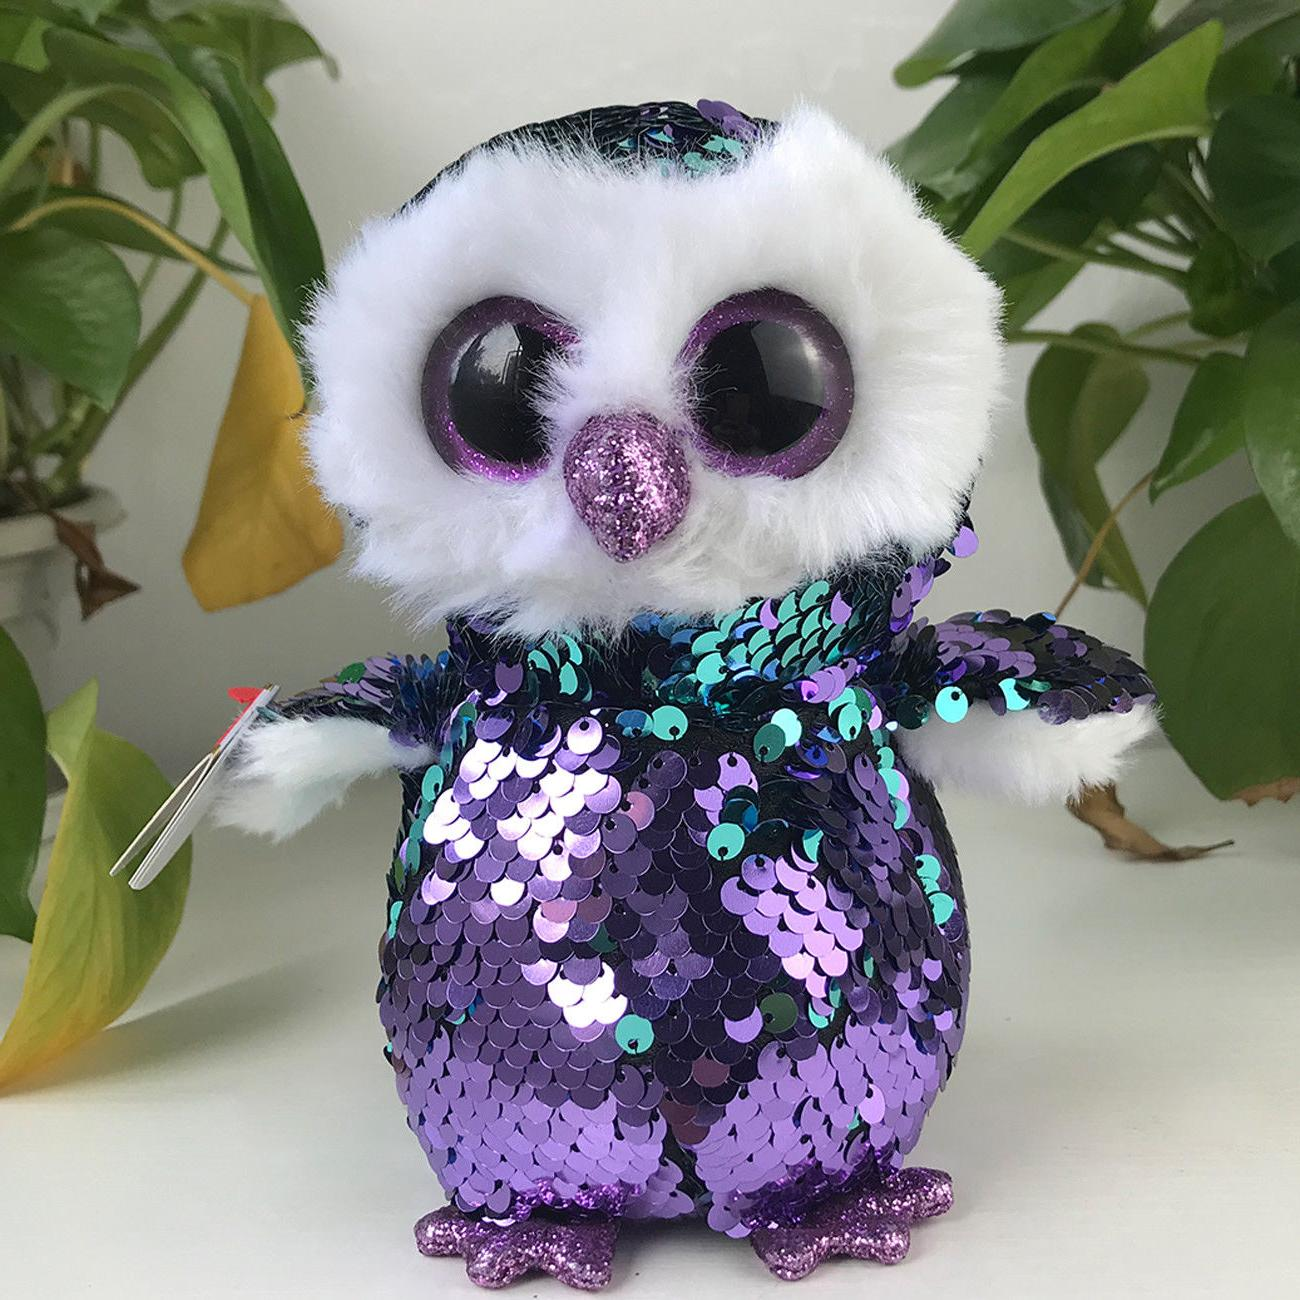 "New 6""ty Beanie Boos Glitter Eyes Plush Stuffed Animals Toys"